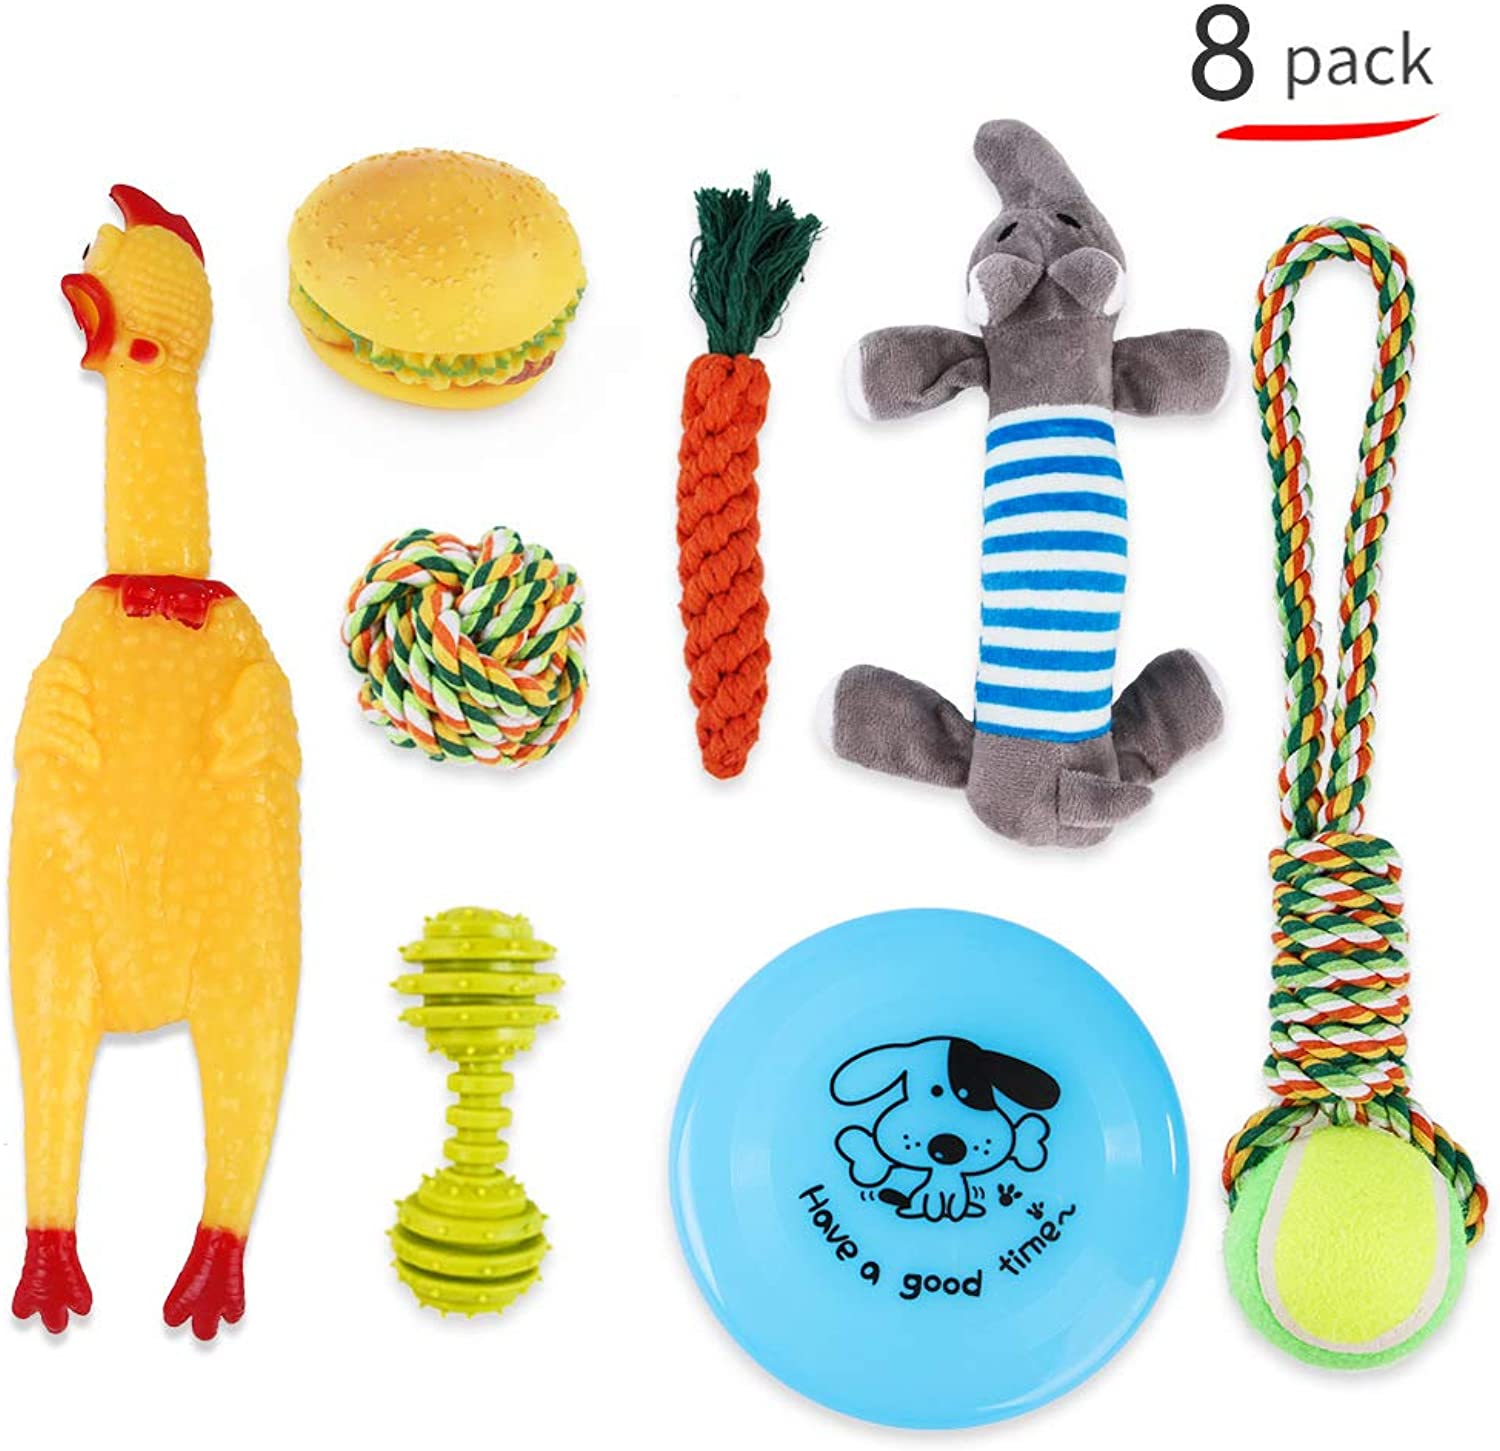 Dog Toys Chewing Toys Dog Chewing Toys Stress Divergence Muzzles eliminated Clean toothpastes Durable Durability Suitable for Small Dogs and Medium Size Dogs (8 Sets)